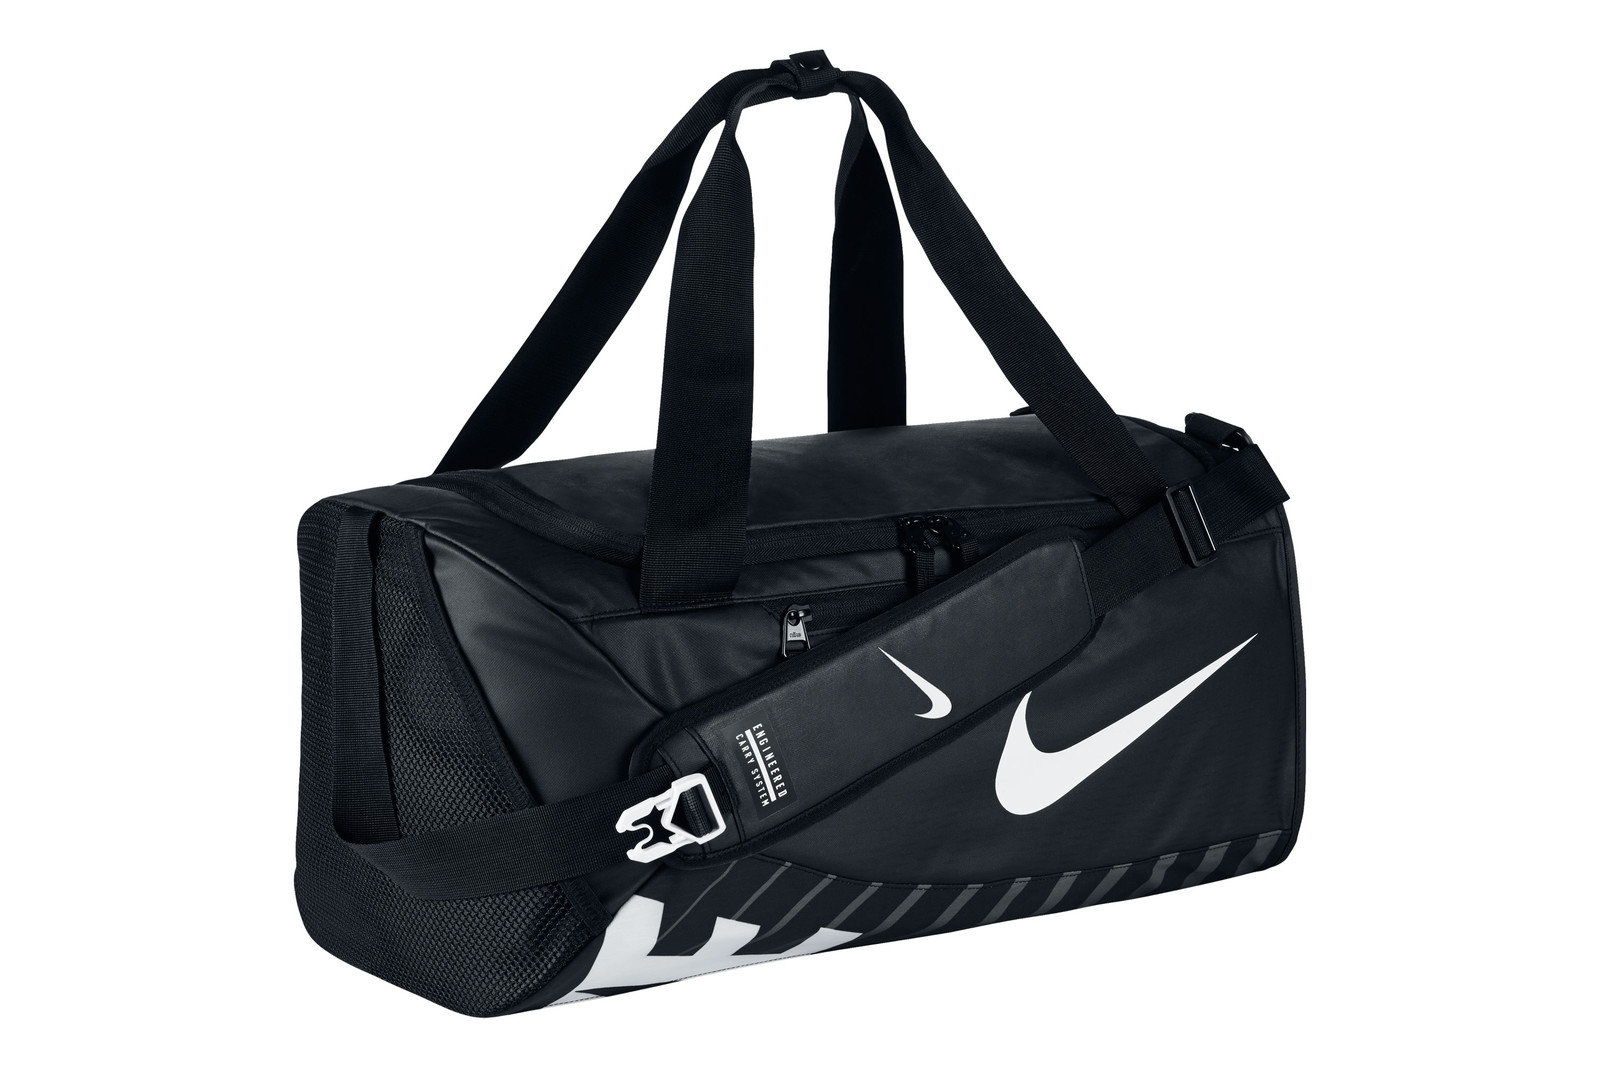 Image of Alpha Adapt Crossbody Small Training Duffel Bag